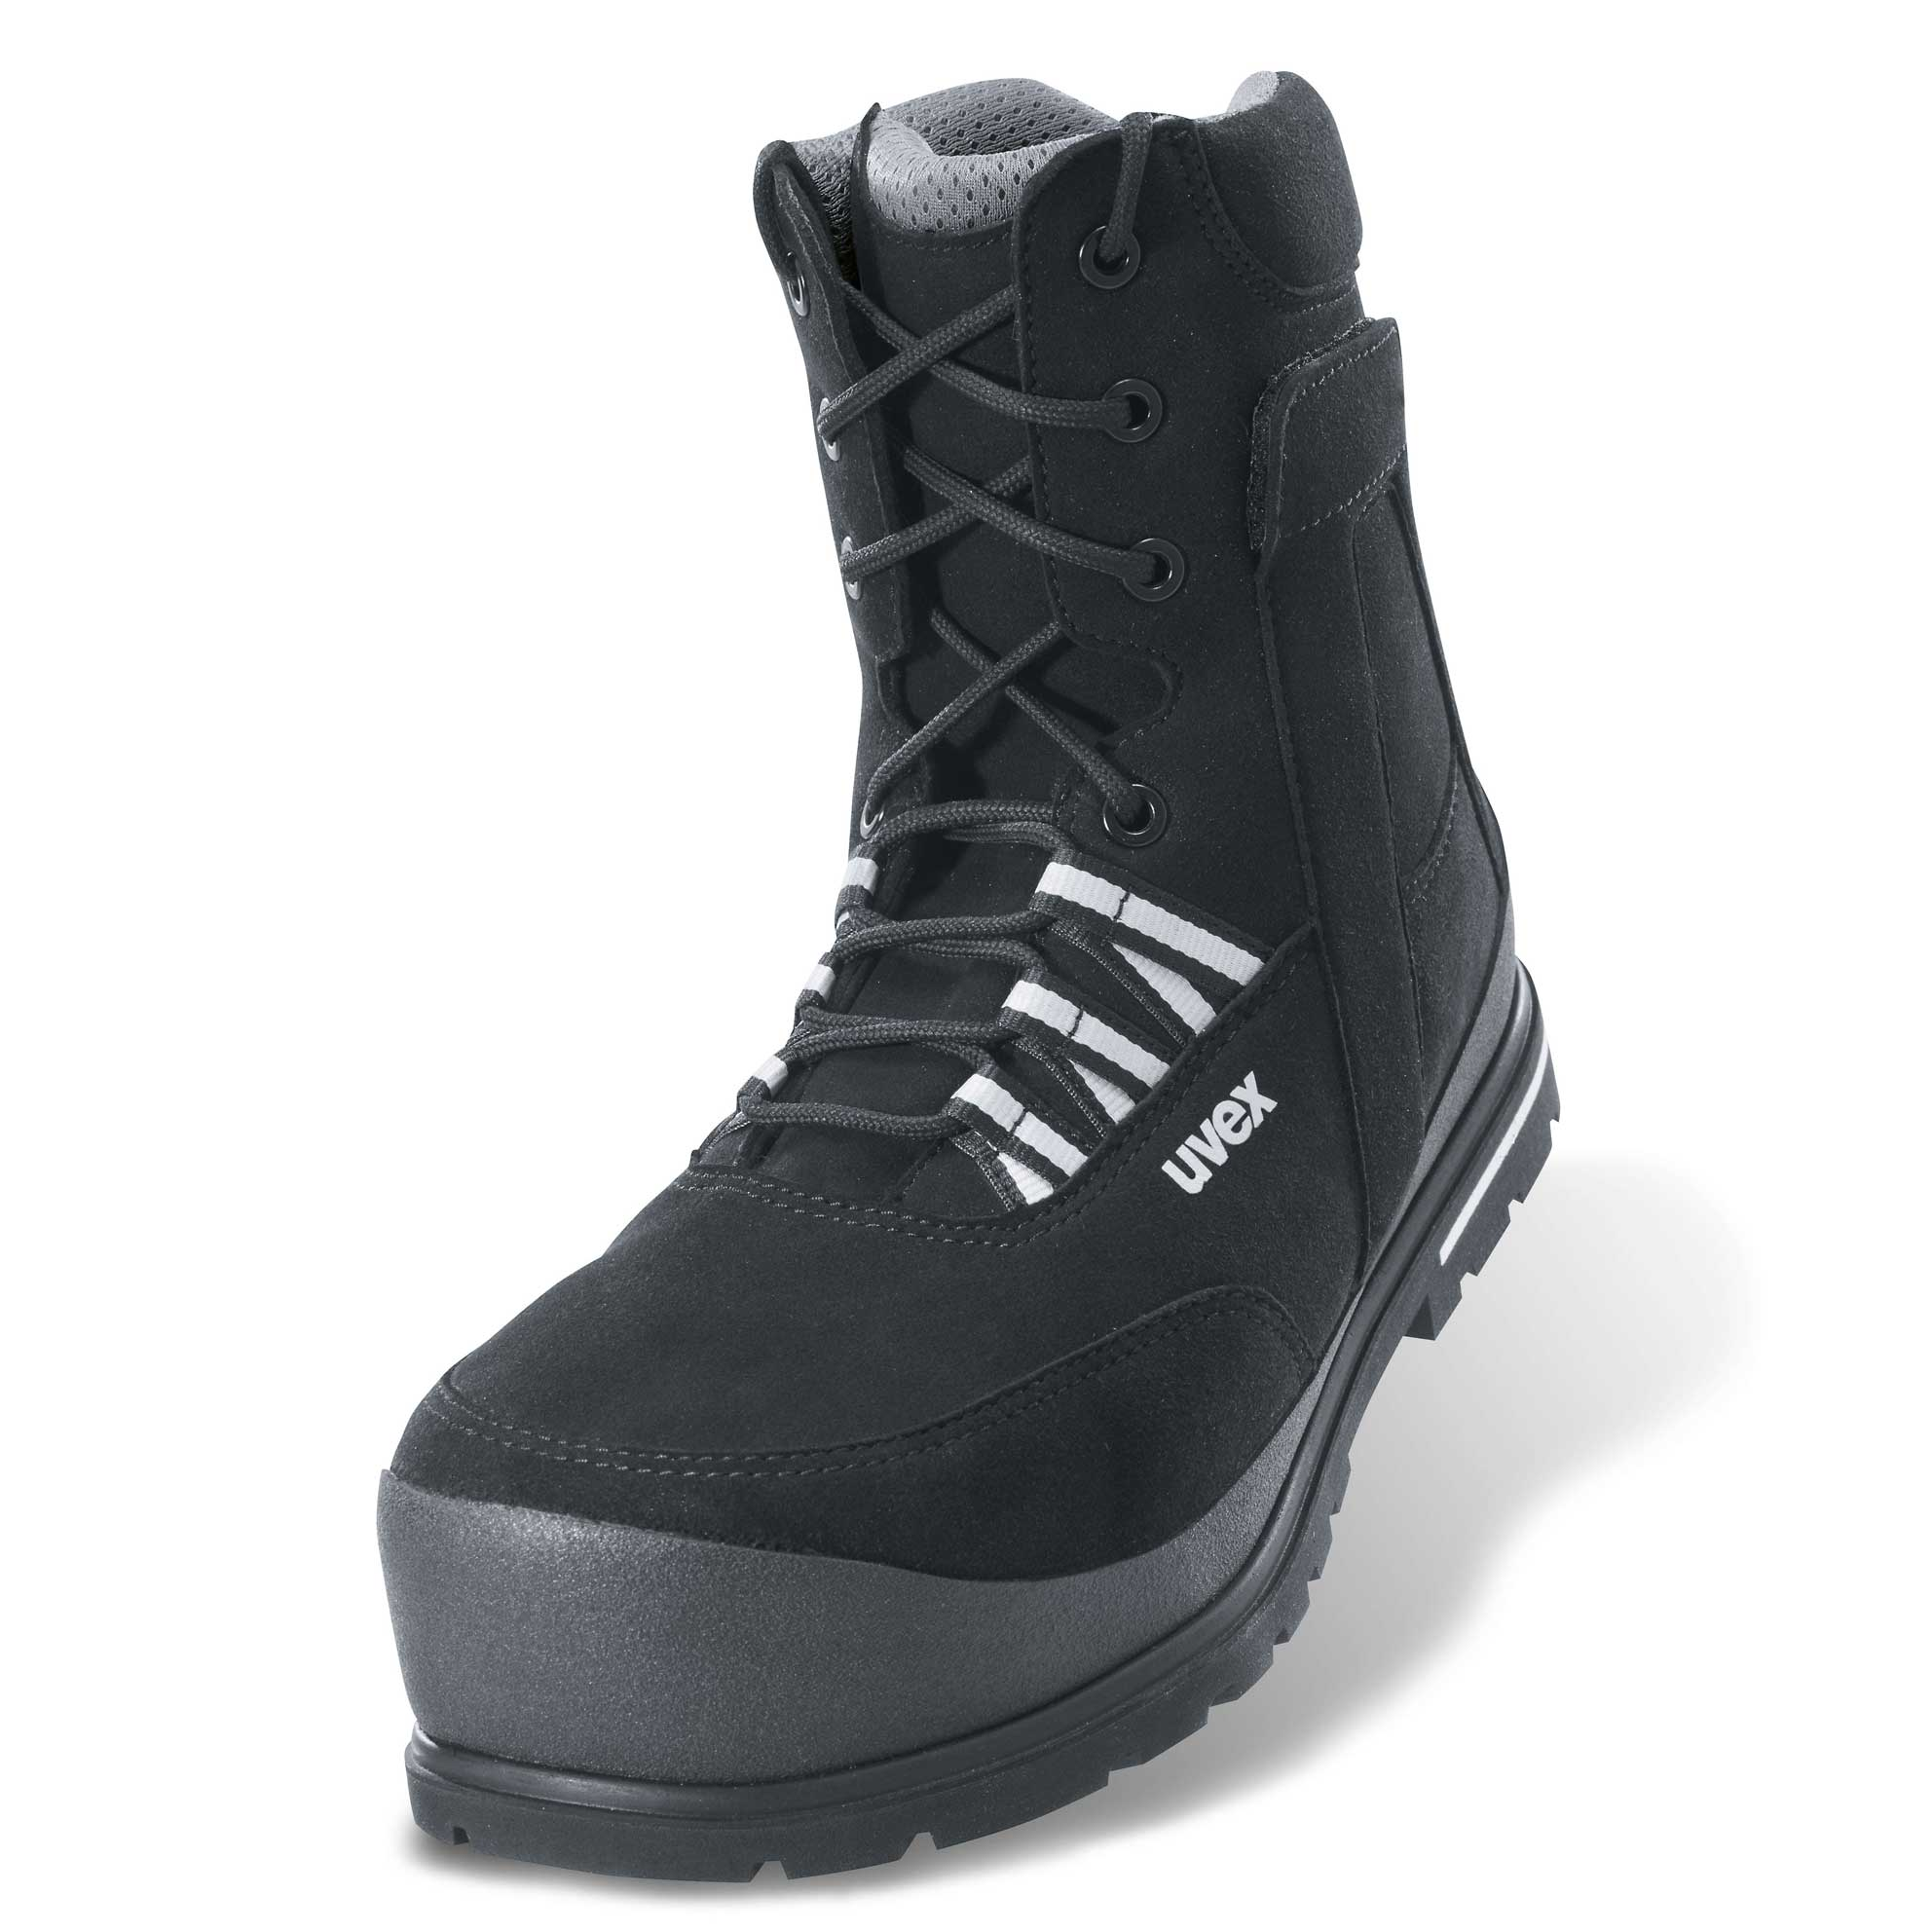 f0917a425e9 uvex motion 3XL S3 SRC lace-up boots | Safety shoes | uvex safety